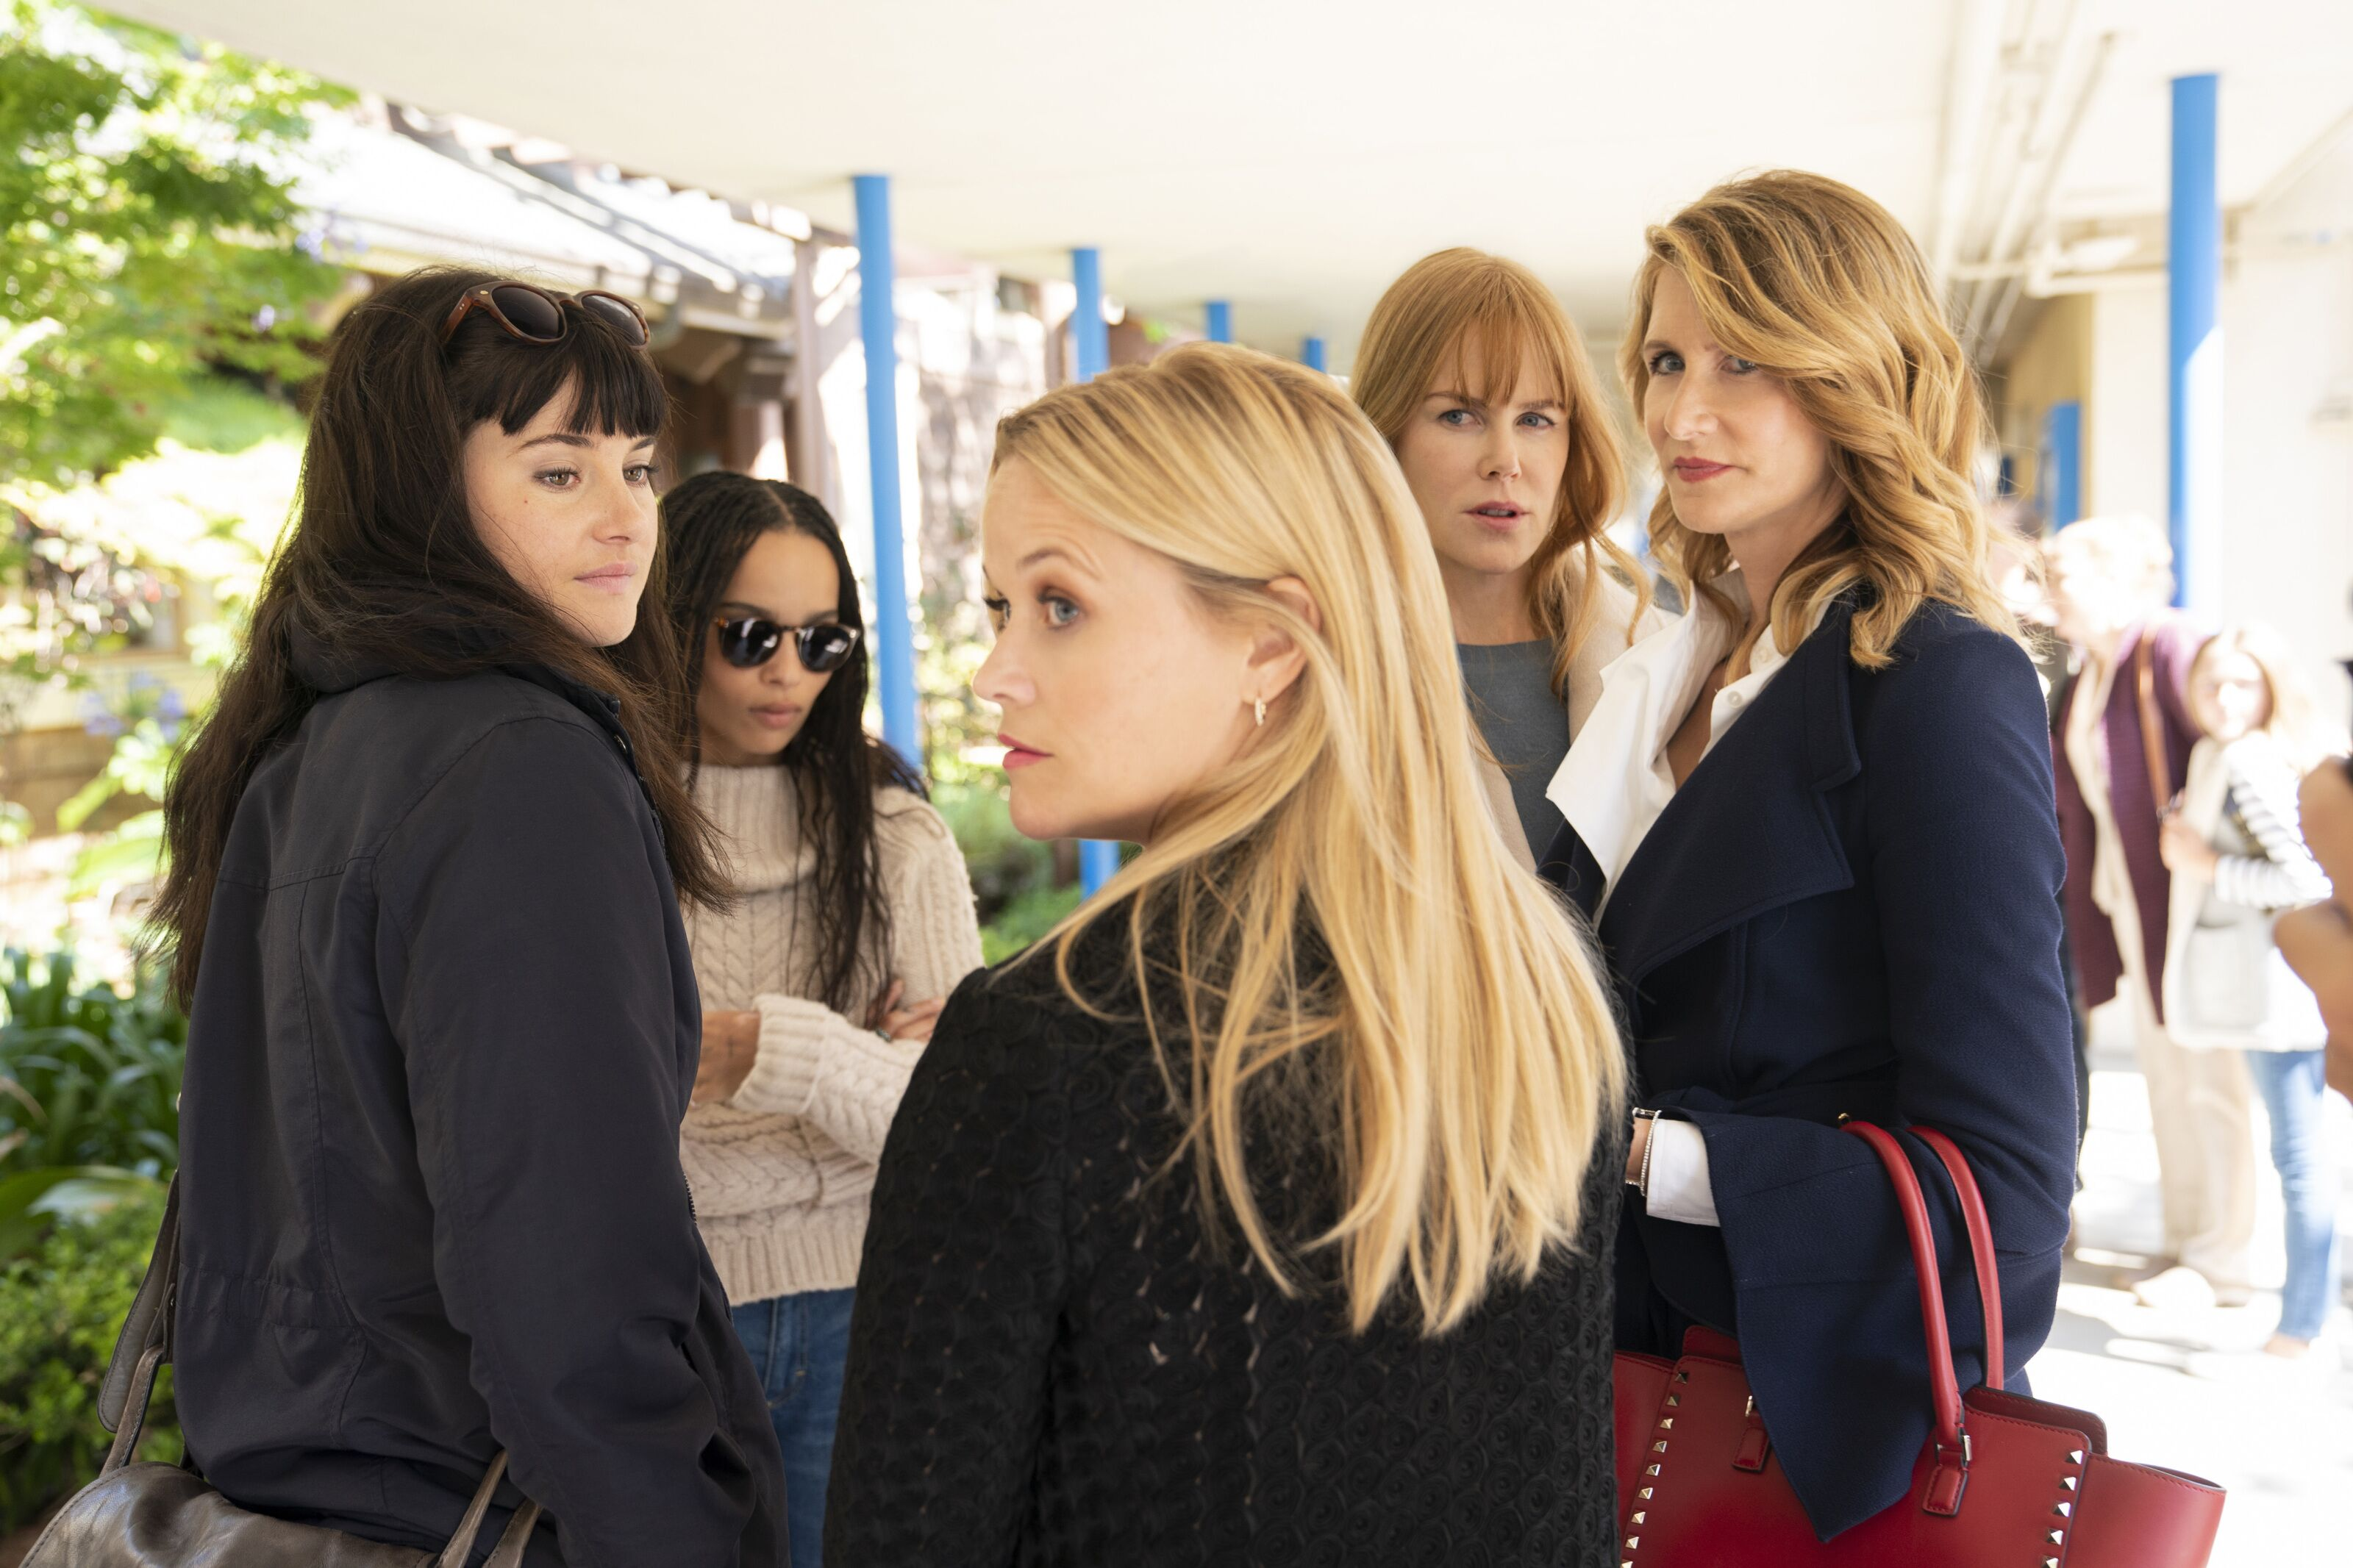 Big Little Lies season 2 episode 6 review: Everyone is starting to break